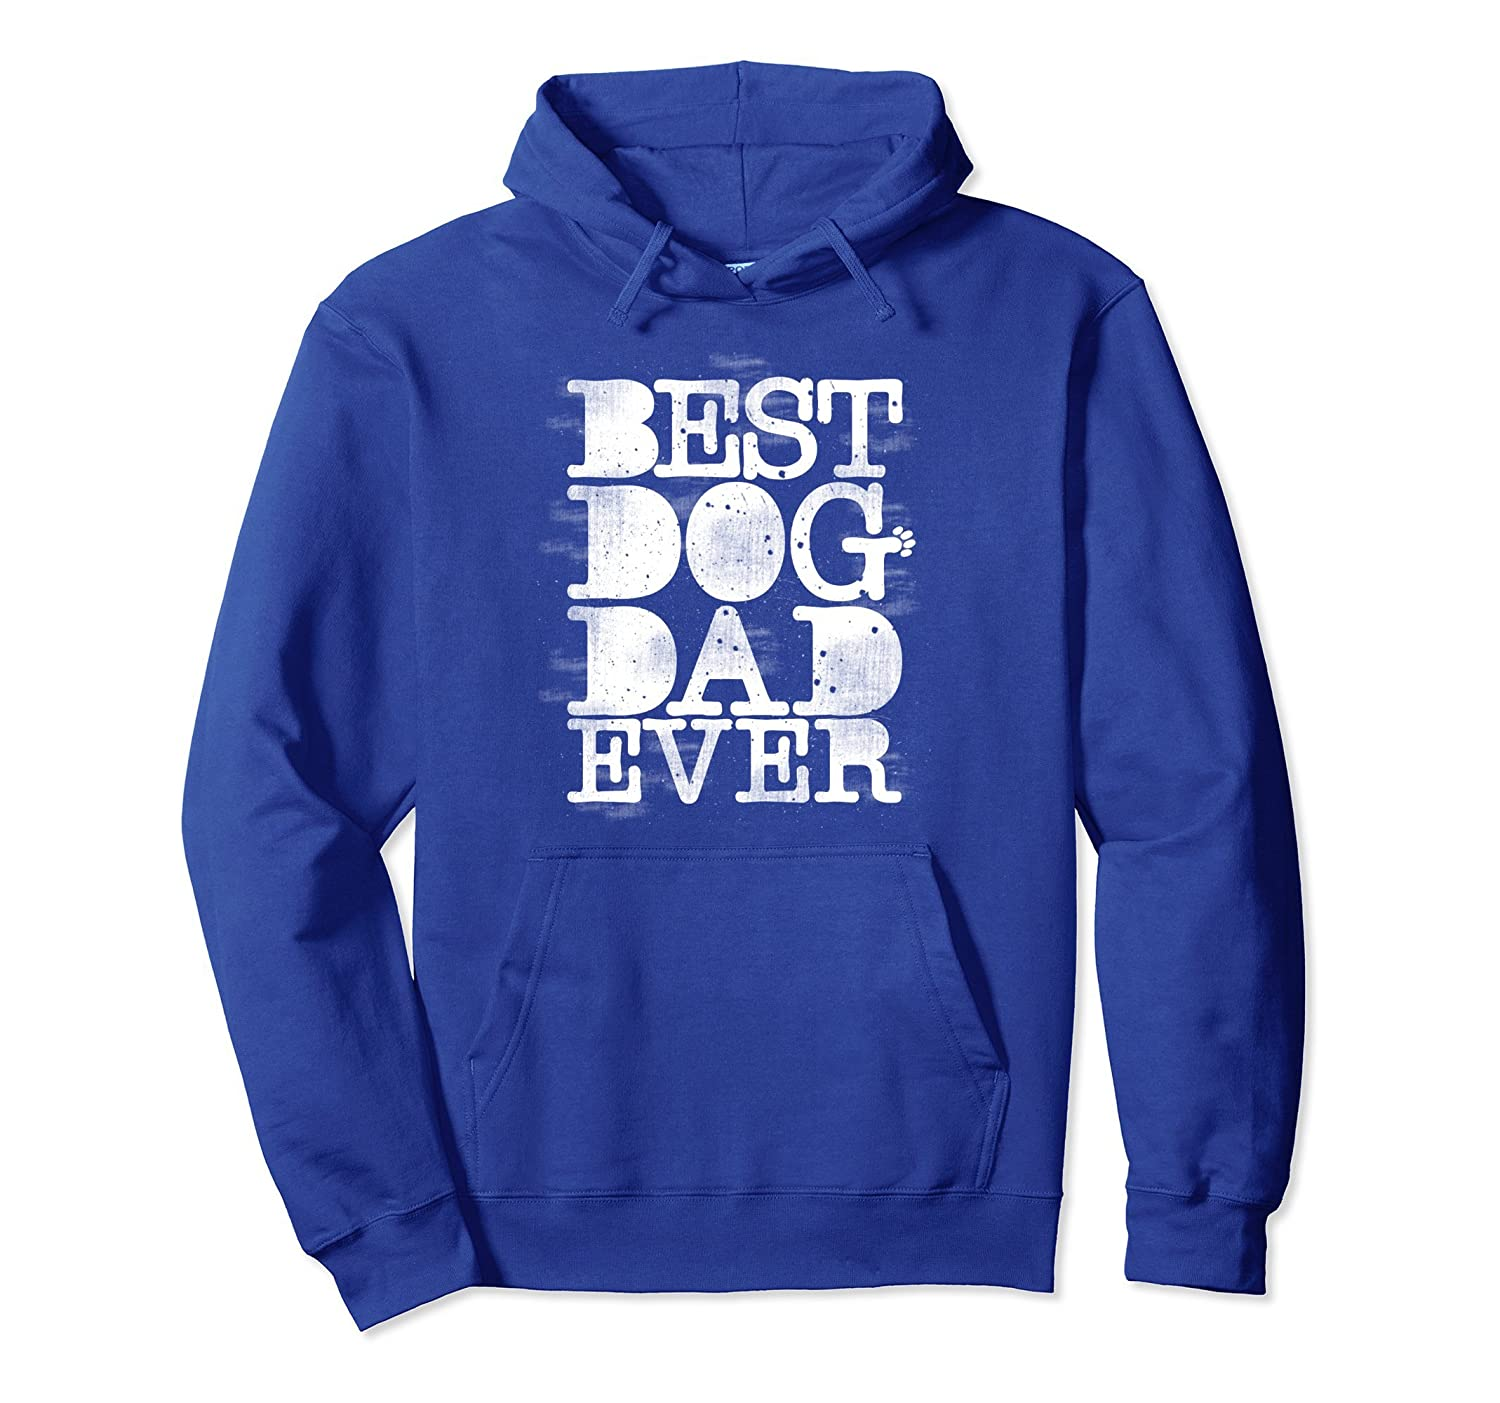 Best Dog Dad Ever Hoodies Fathers Day Gift from Daughter- TPT